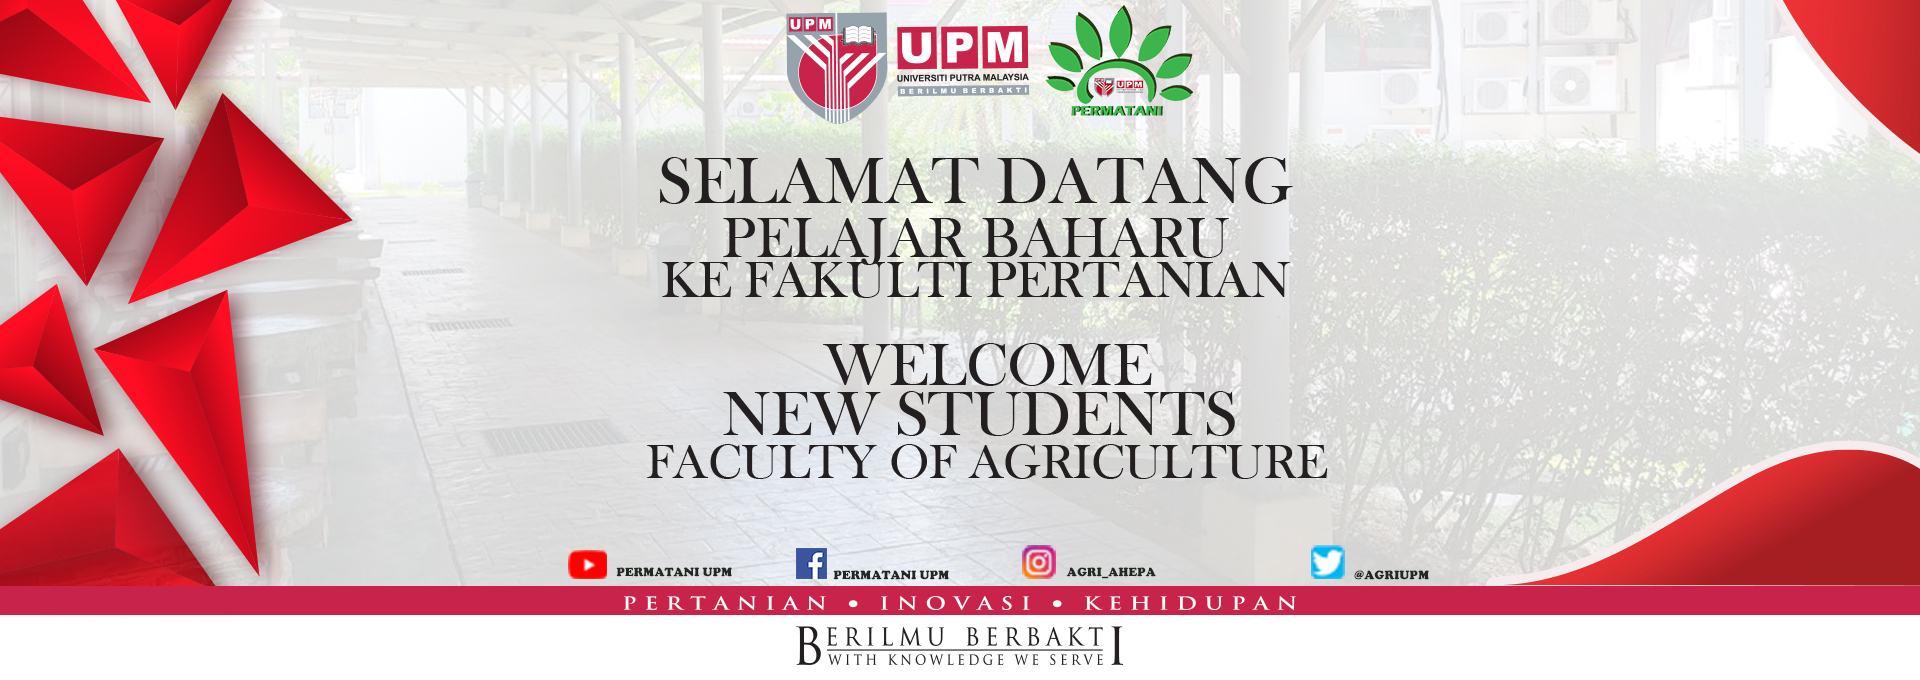 Congratulation & Welcome New Students